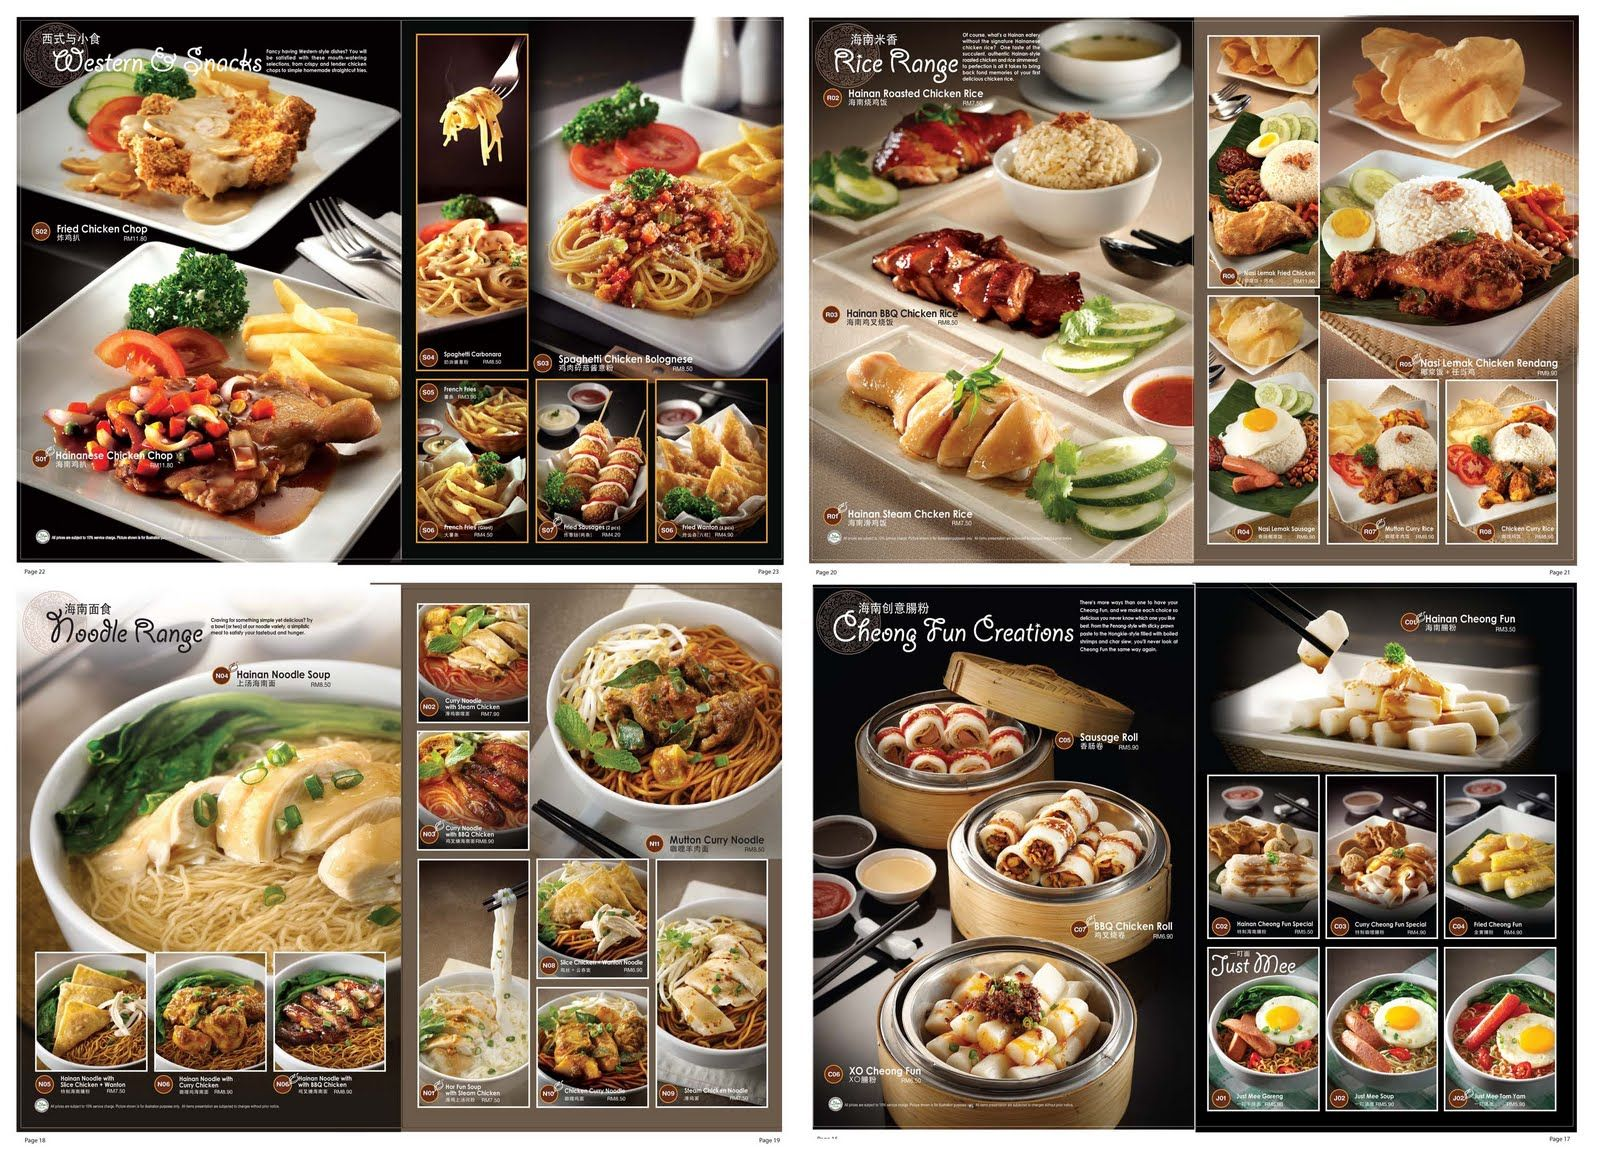 1000 images about menu on pinterestrestaurant food menu and menu design ideas - Menu Design Ideas